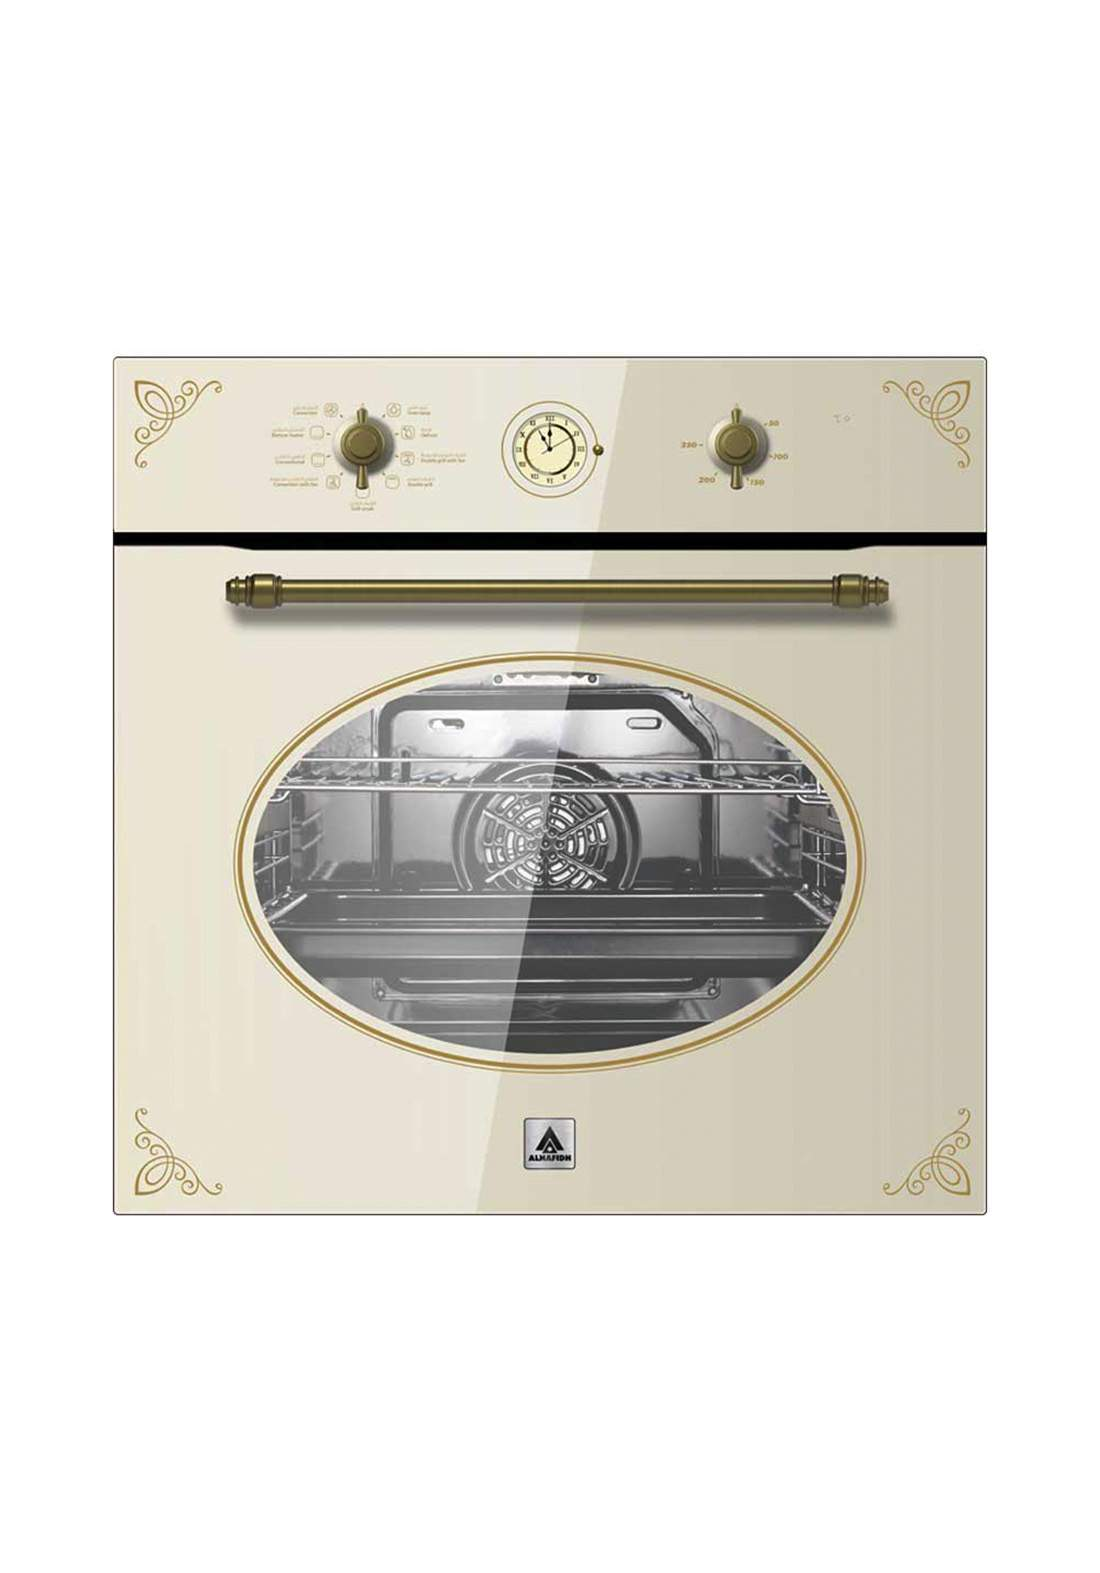 Alhafidh BEOHA-70ANT2 Built-In Electric Oven 60 Cm فرن كهربائي مدمج